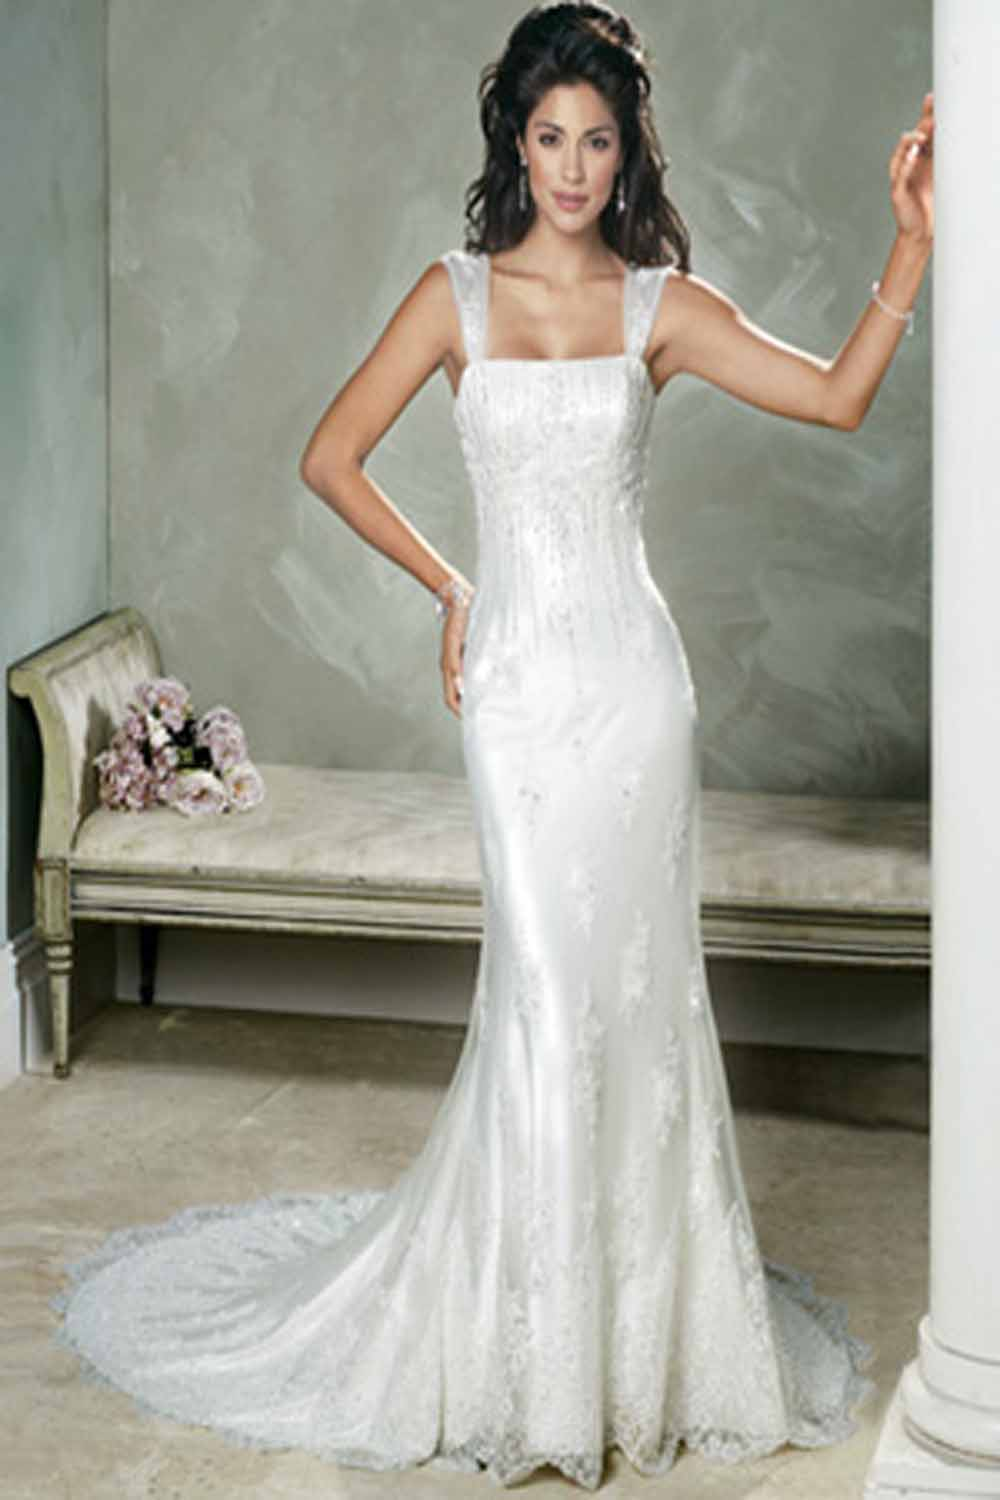 39 sheath wedding style dresses 39 make a flairy appearance for Dress of wedding style